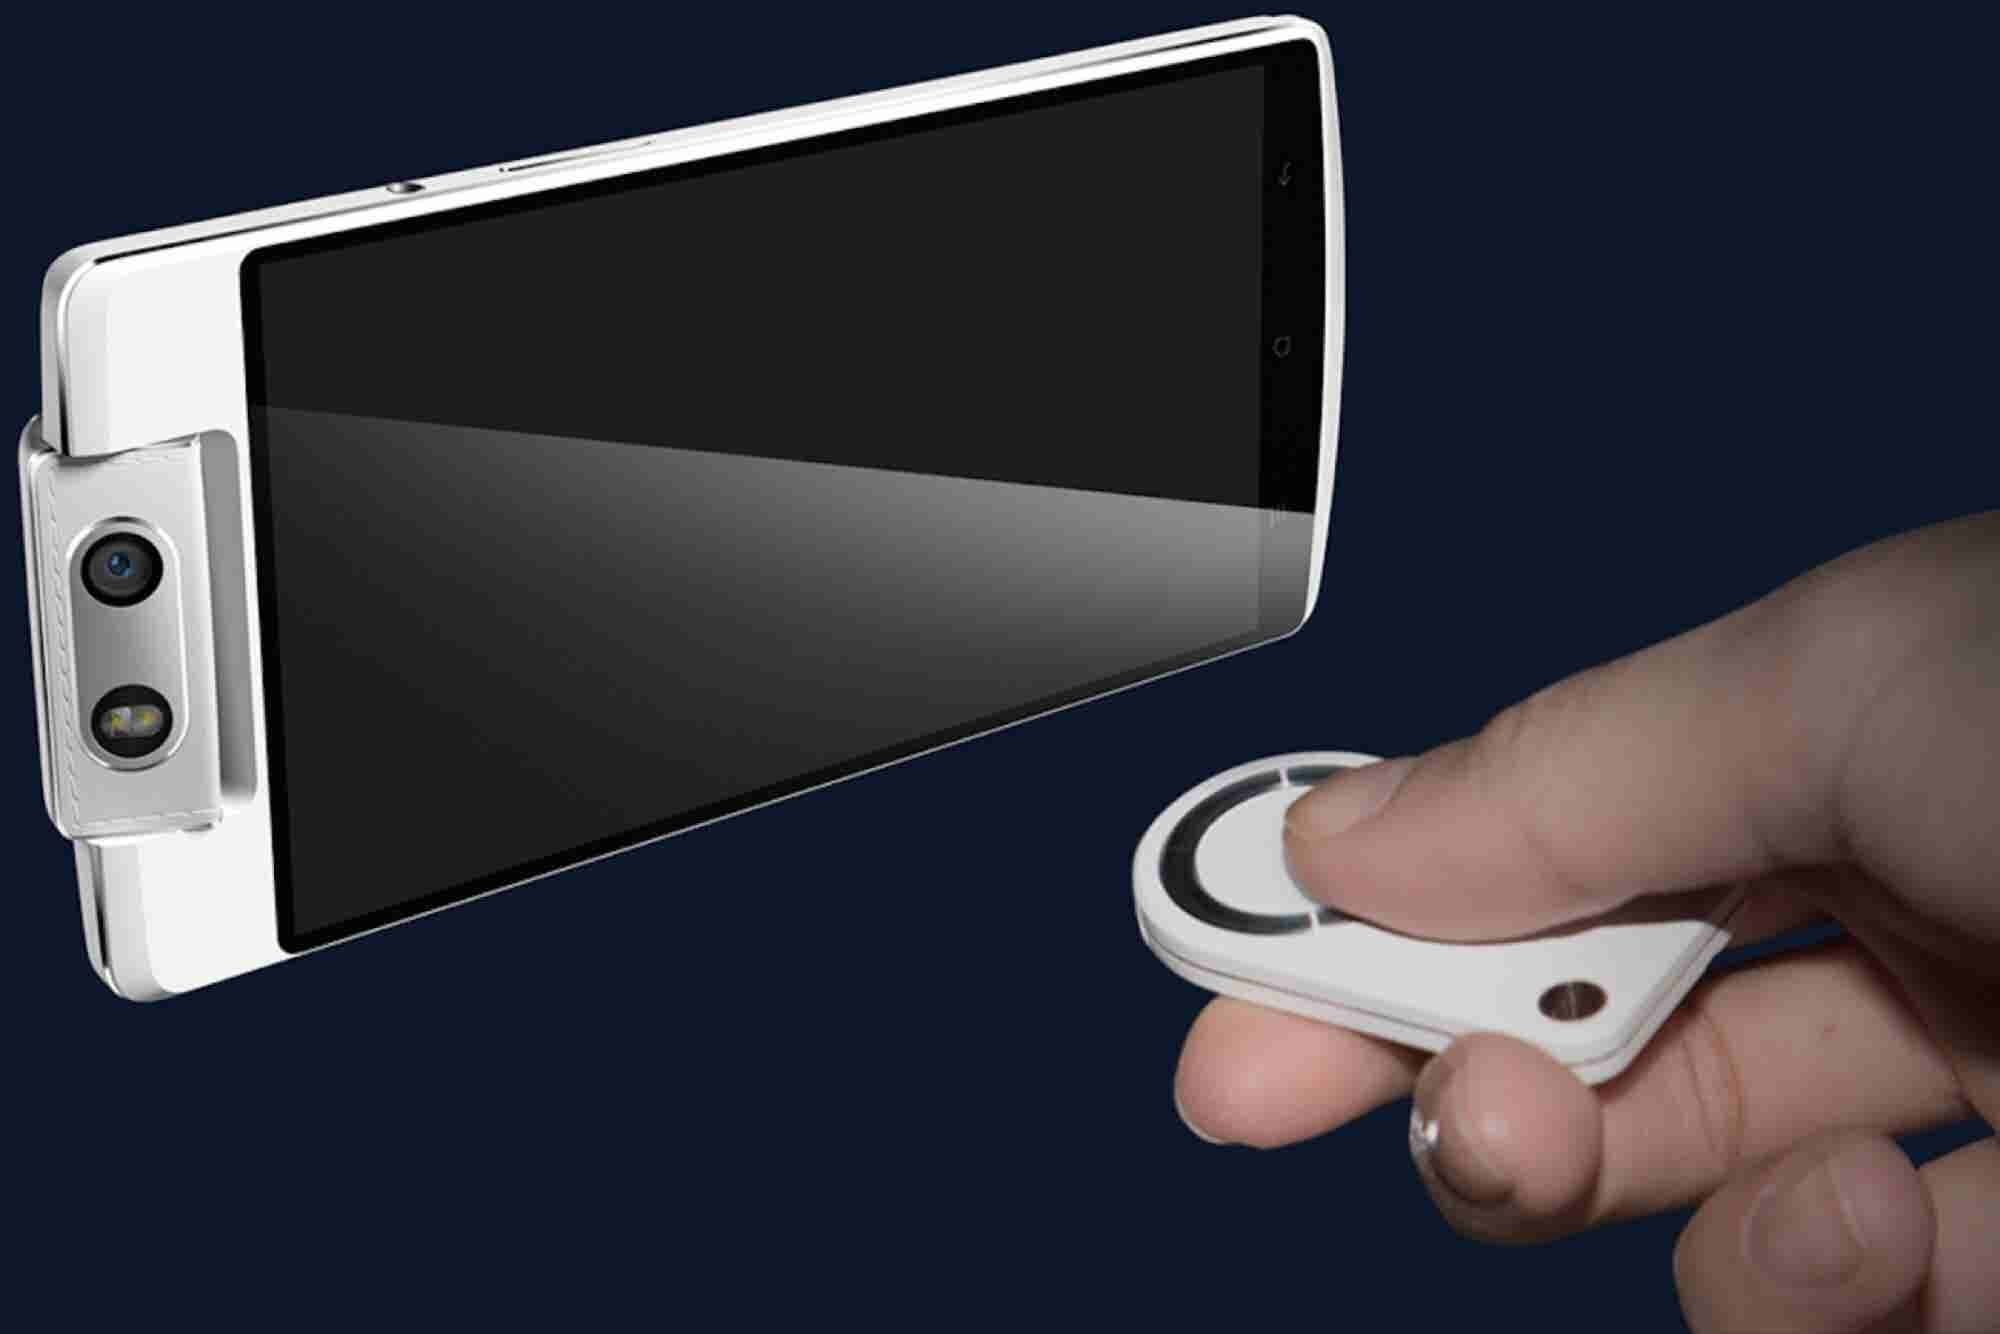 The Game Changer: OPPO Releases Smartphone With Rotating Camera